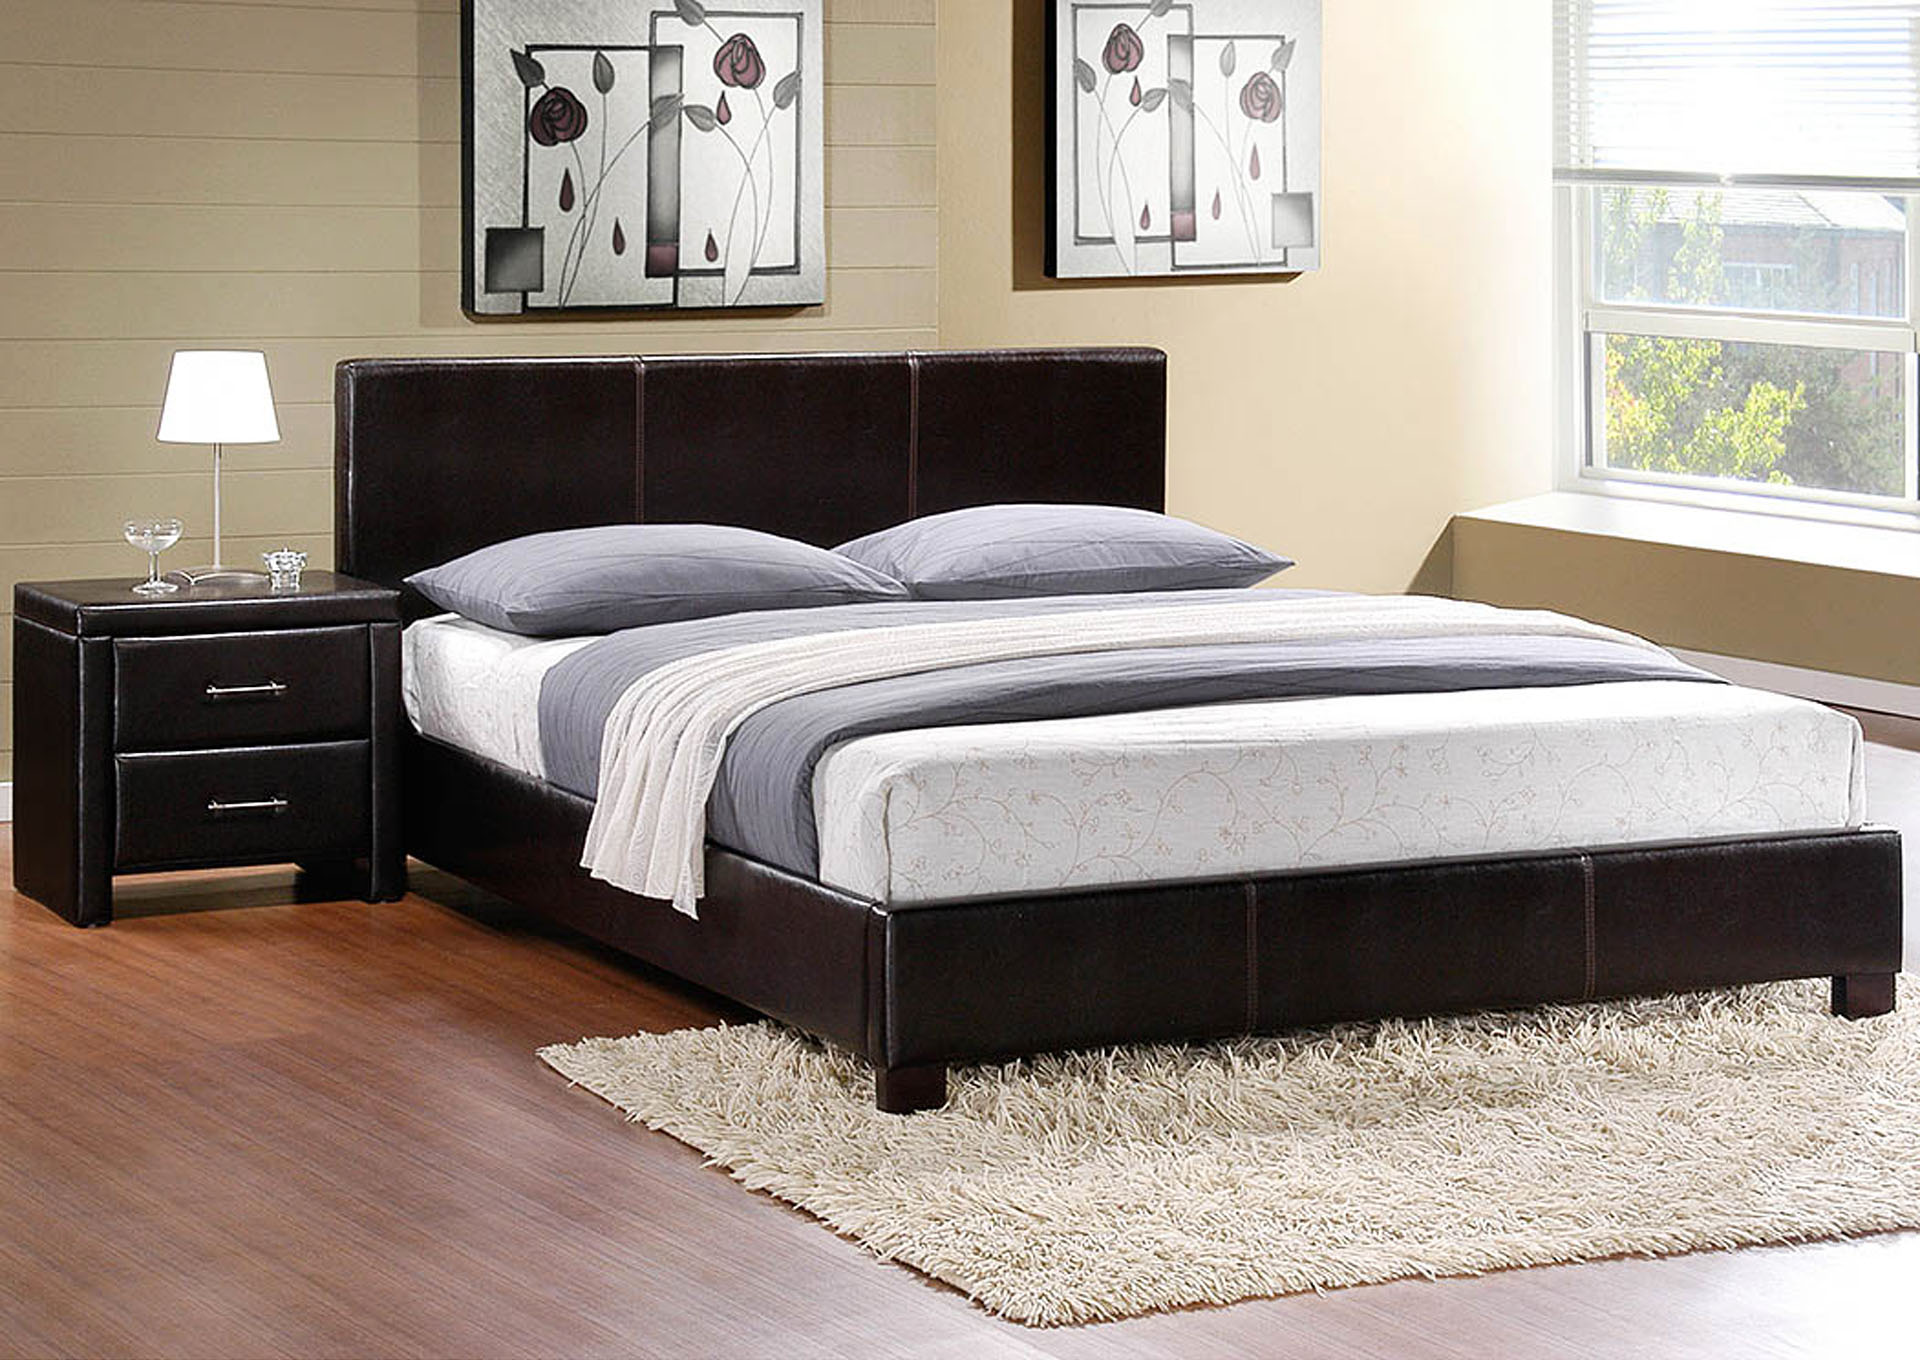 Zoey Dark Brown Full Platform/Upholstered Bed,Homelegance